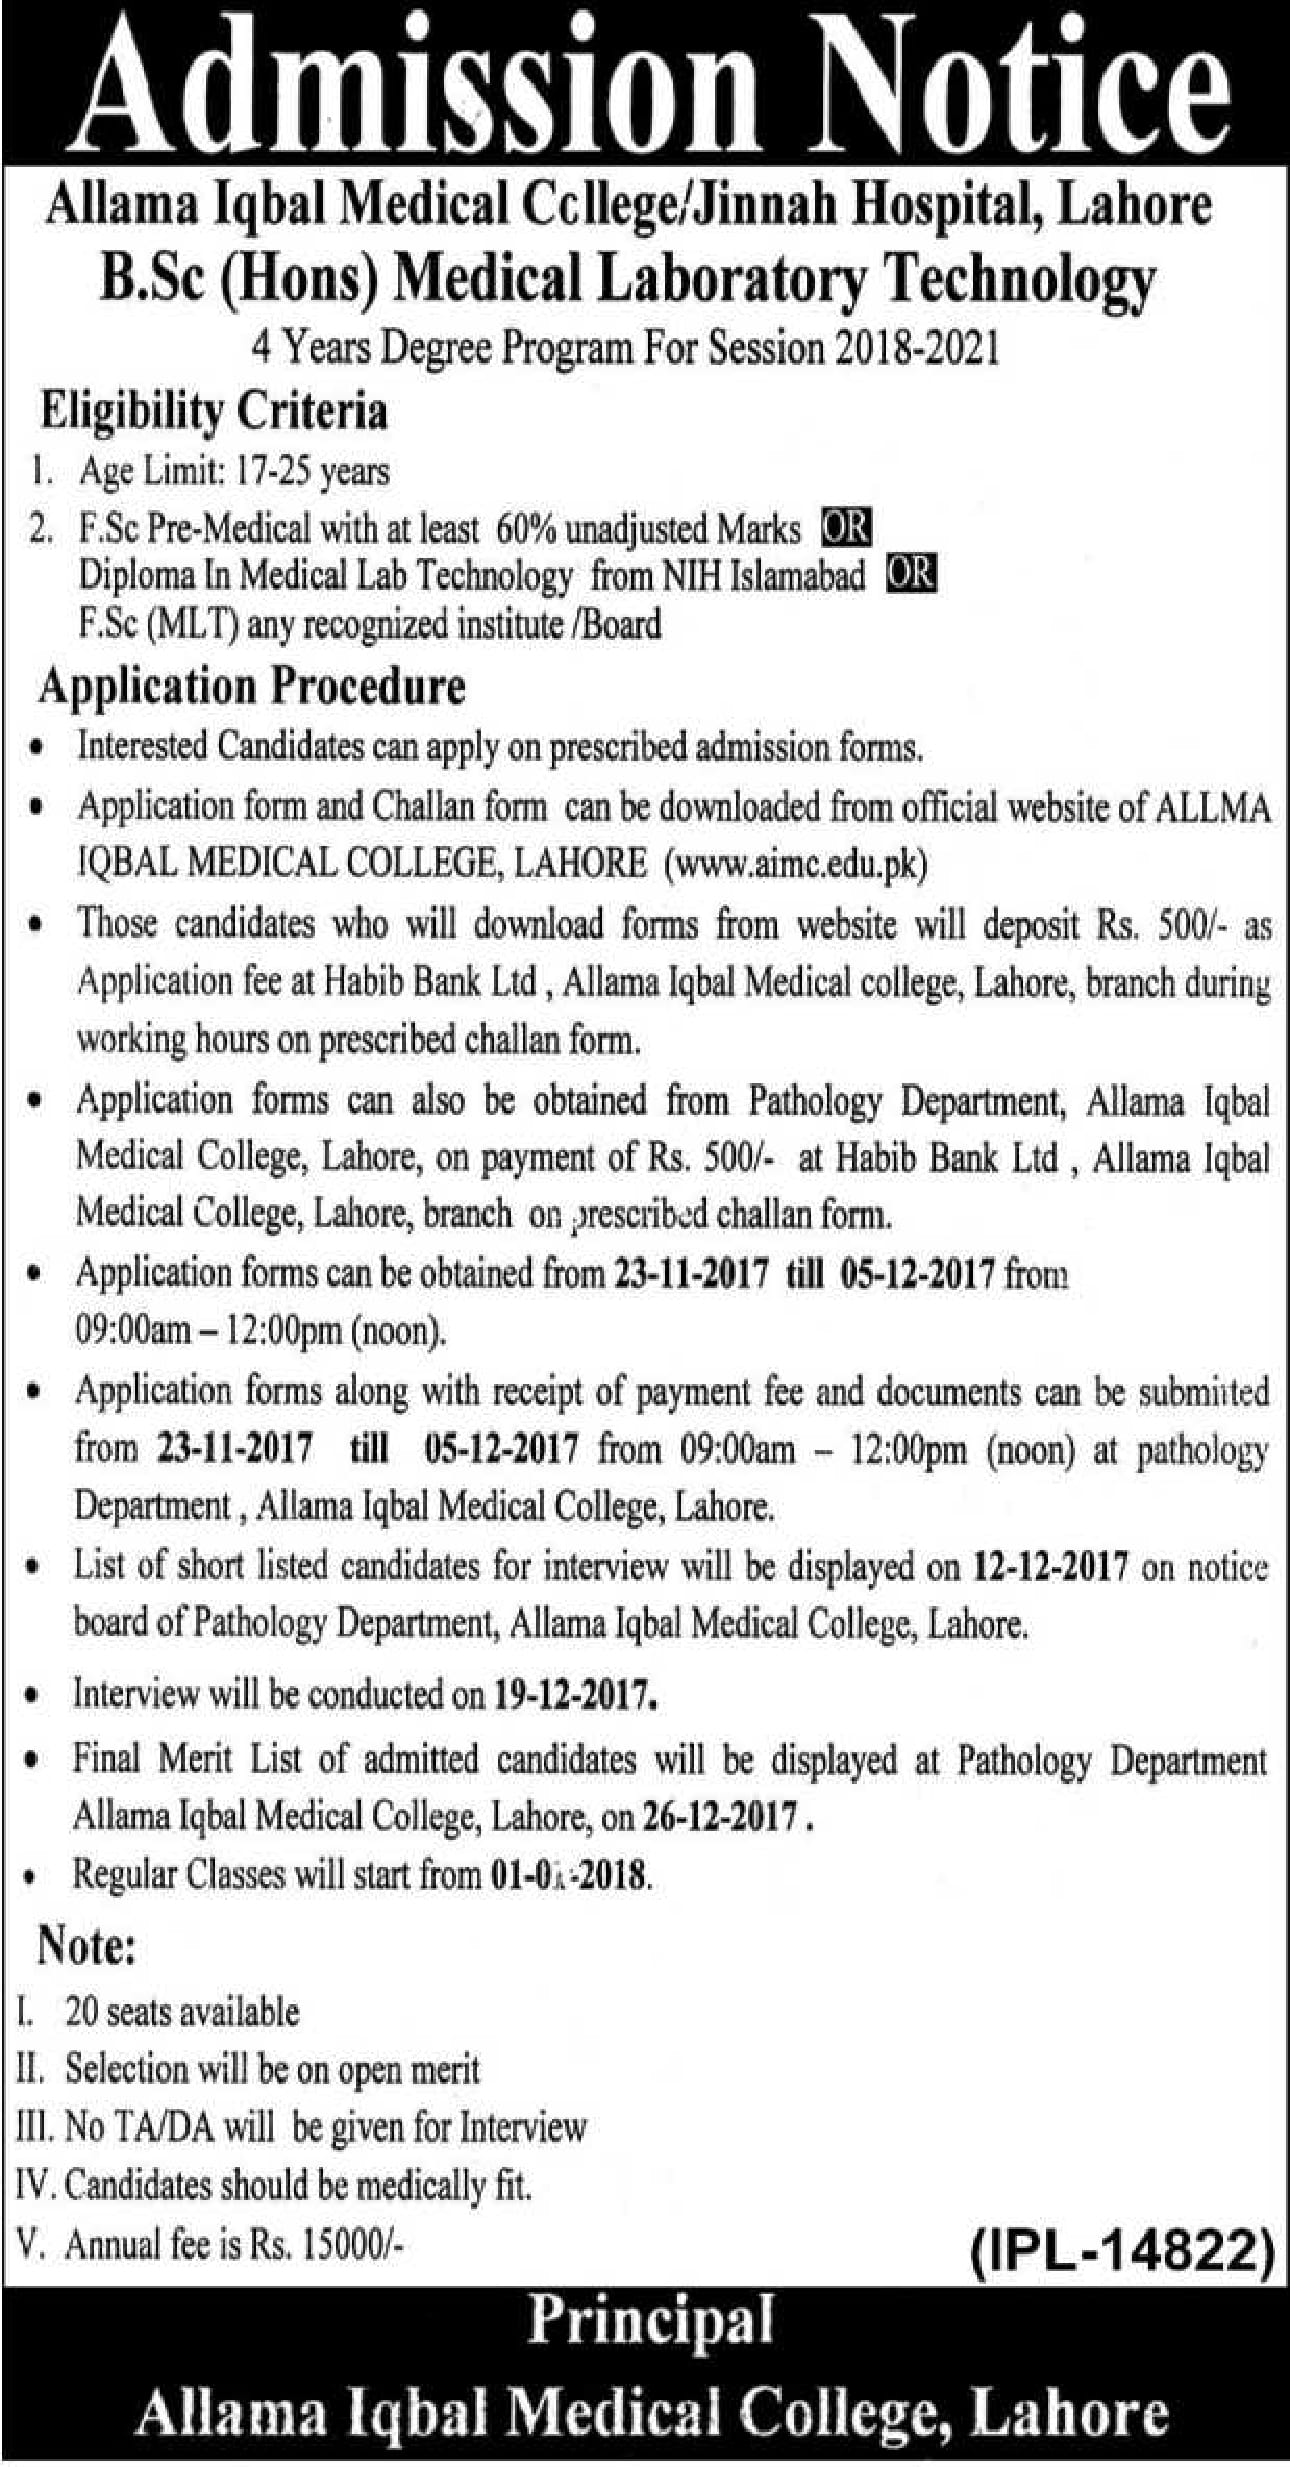 Allama Iqbal Medical College, Lahore Admissions 2018-21 B.Sc. (Hons) Medical Lab Technology